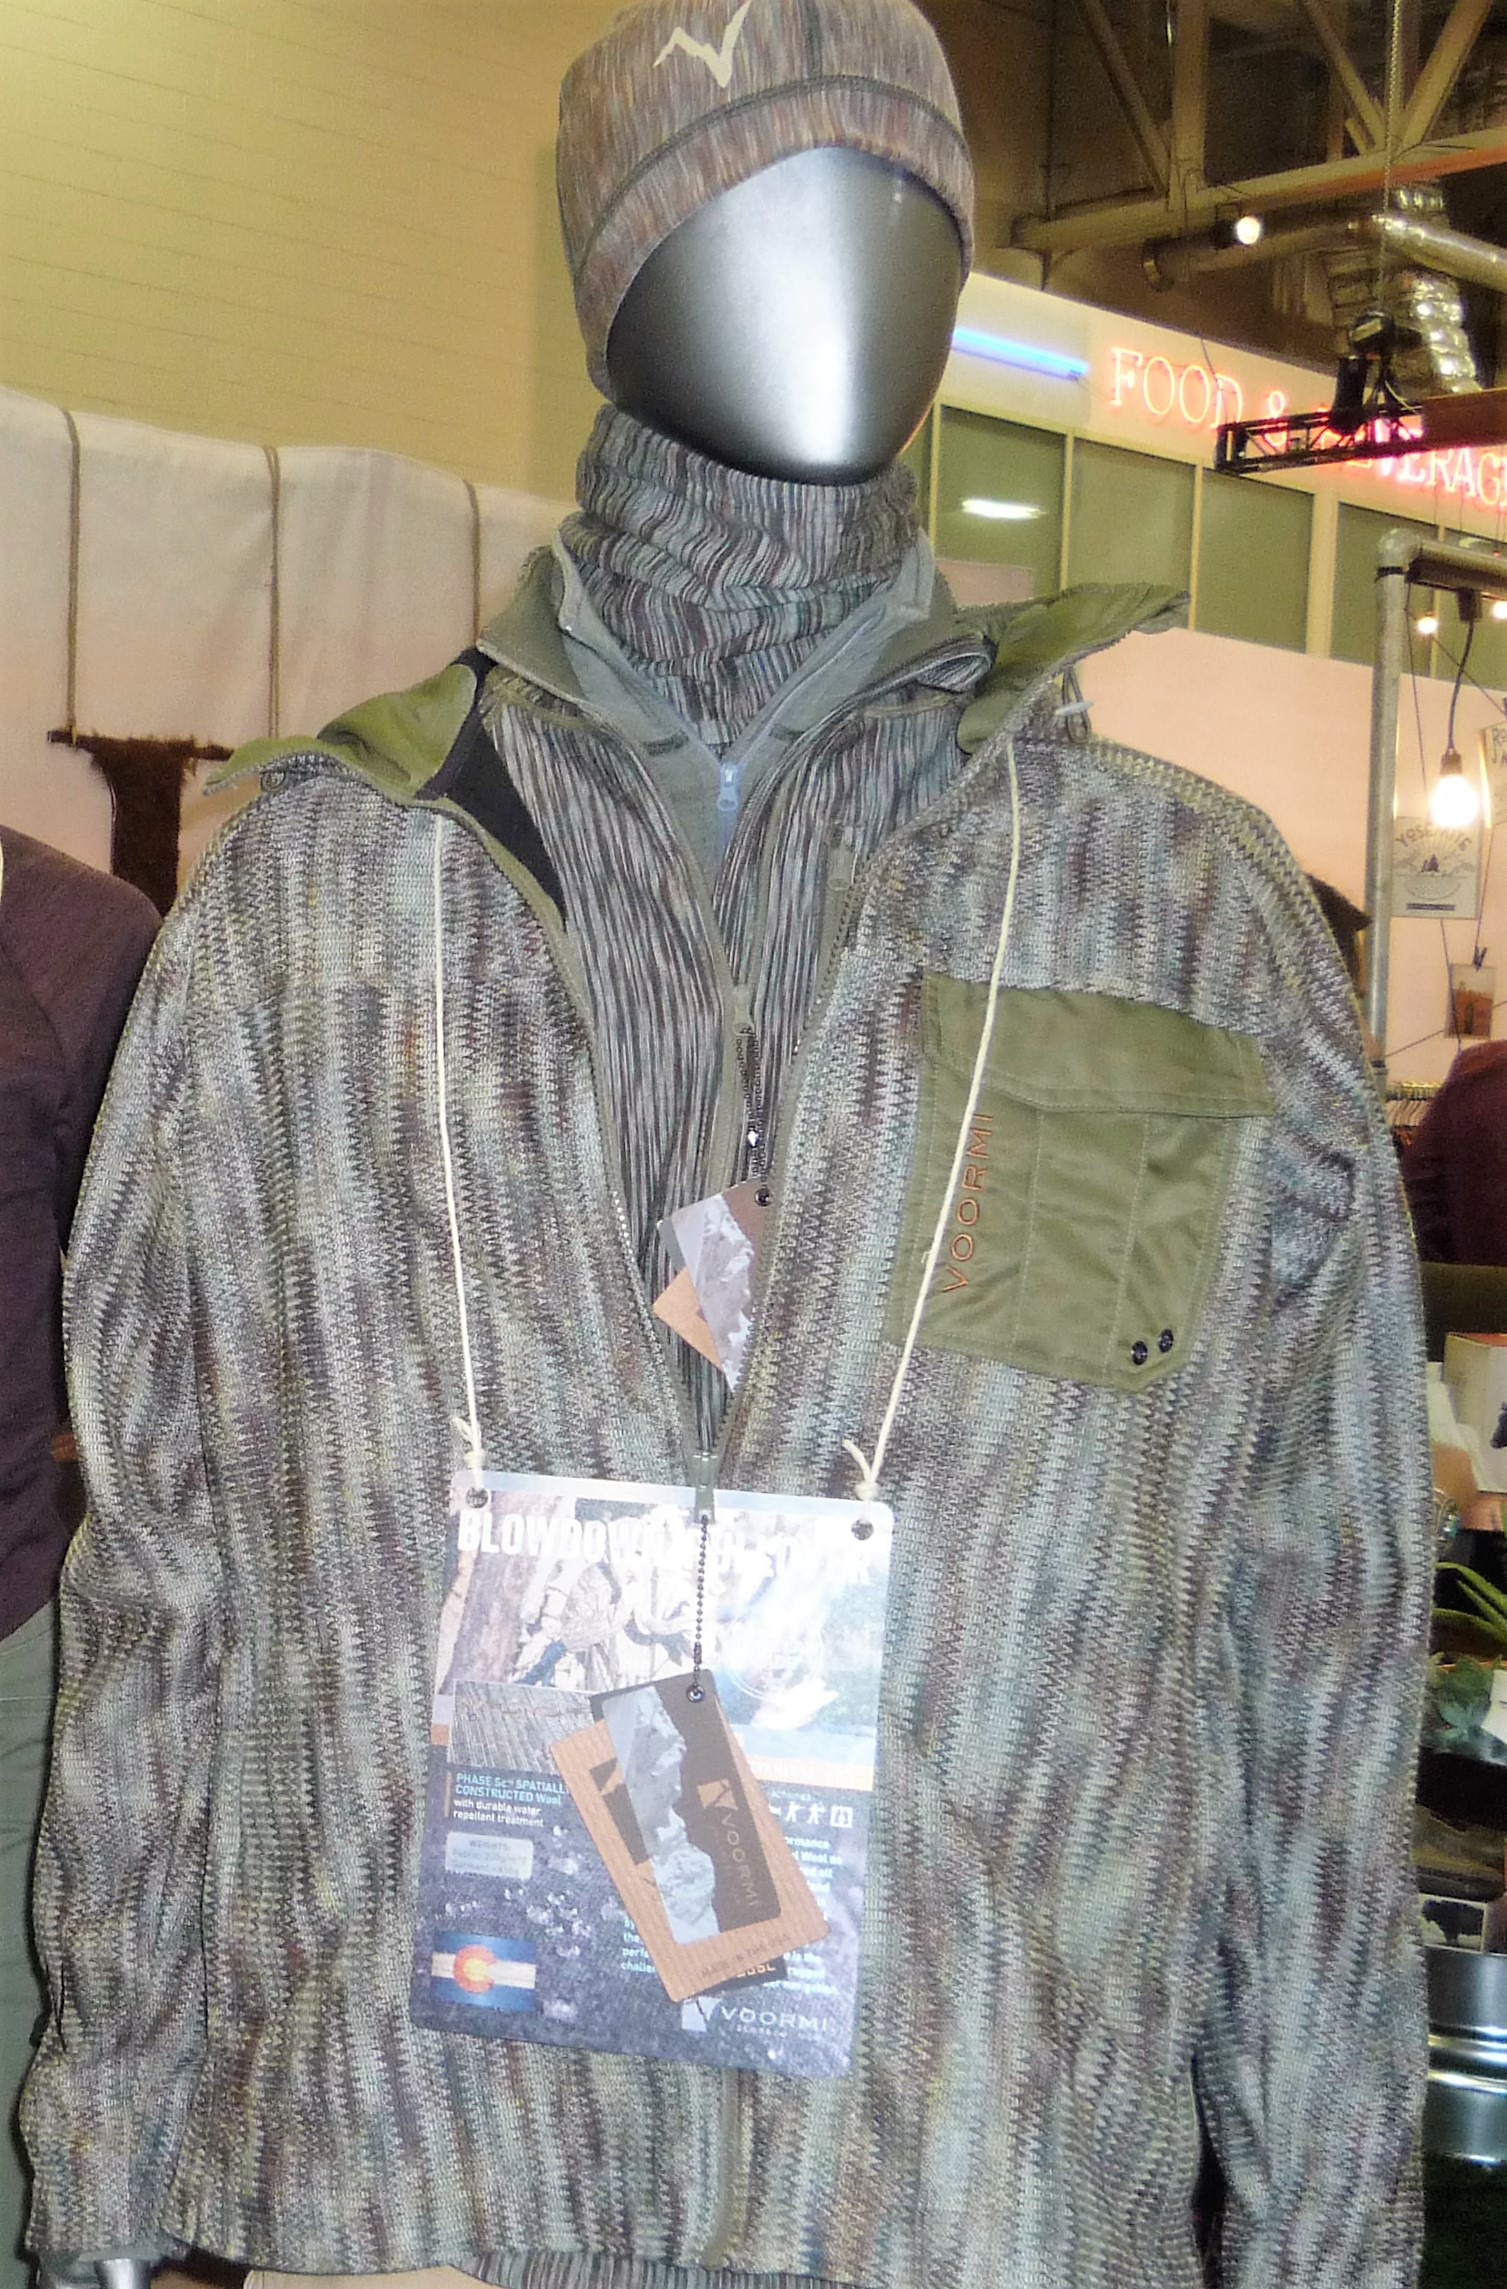 Voormi Rocky Mountain Merino knitted camo hunting kacket. © Voormi